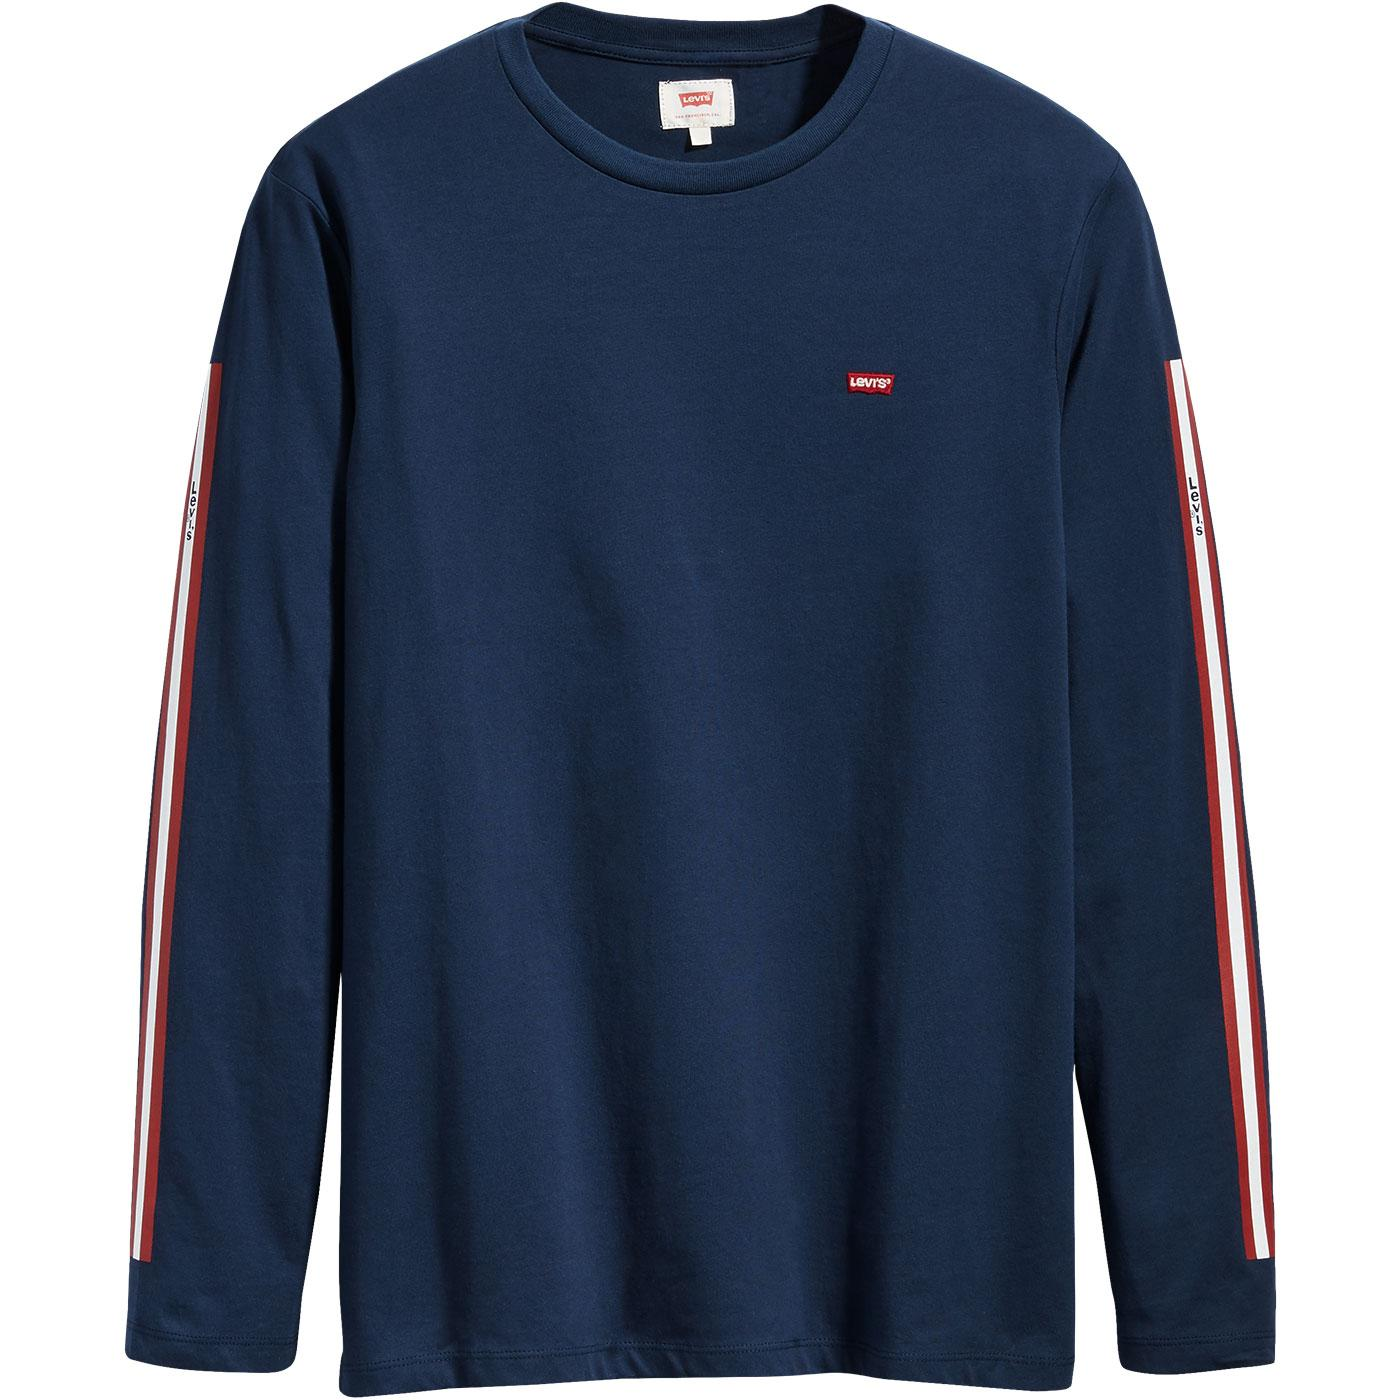 LEVI'S Mens Retro 70s Indie Long Sleeve Tee - Navy